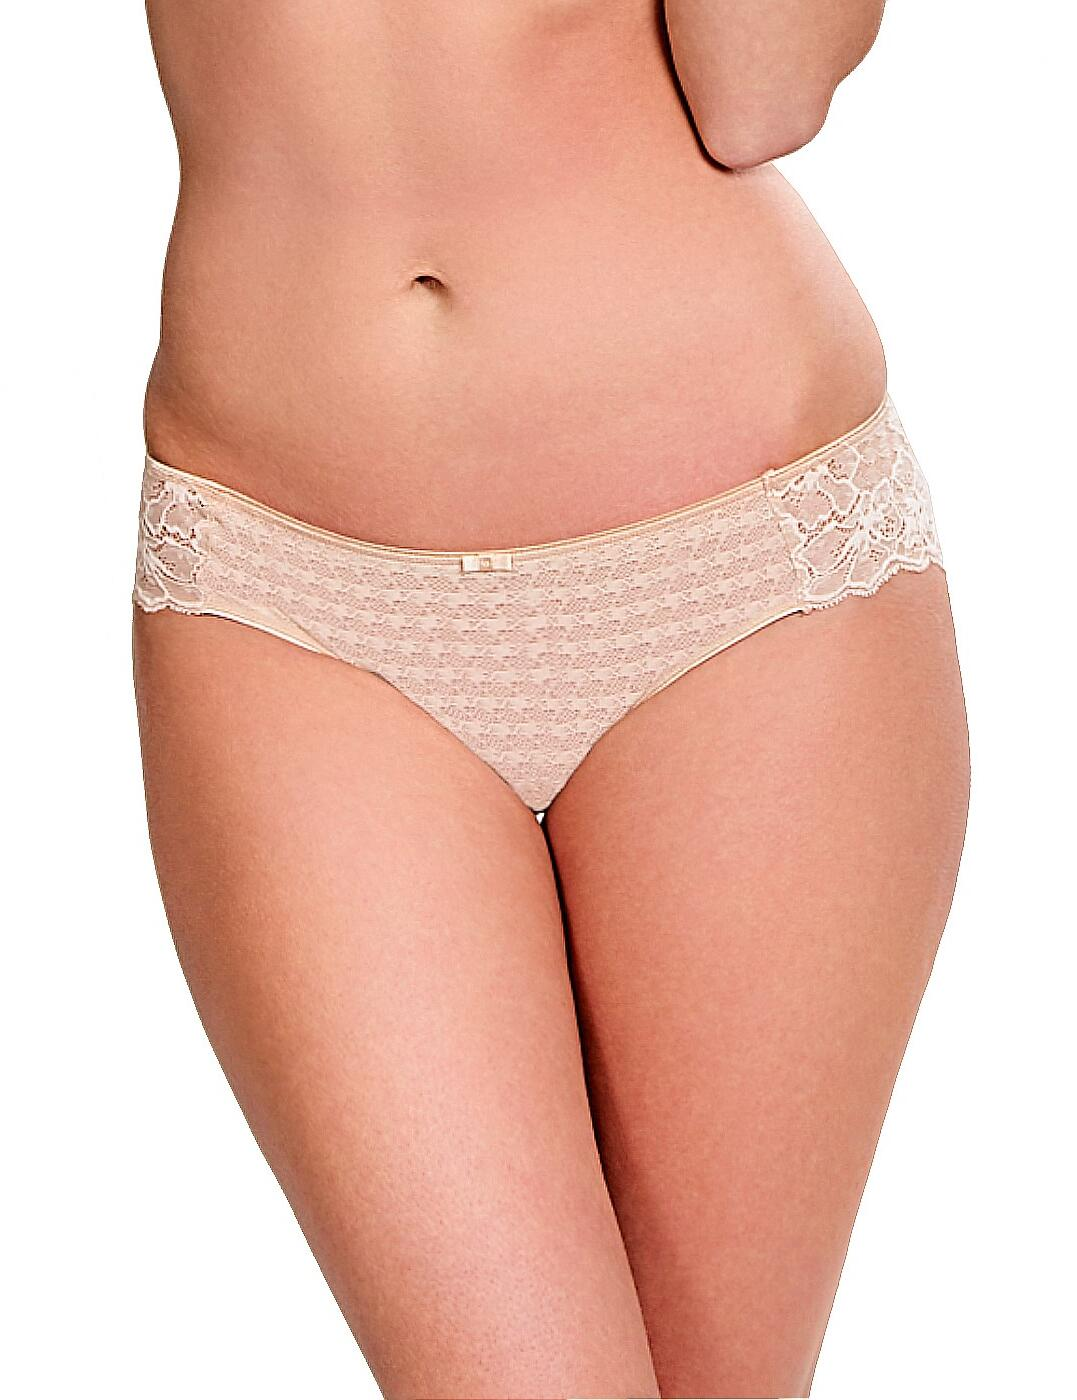 7282 Panache Envy Lace Brief - 7282 Nude